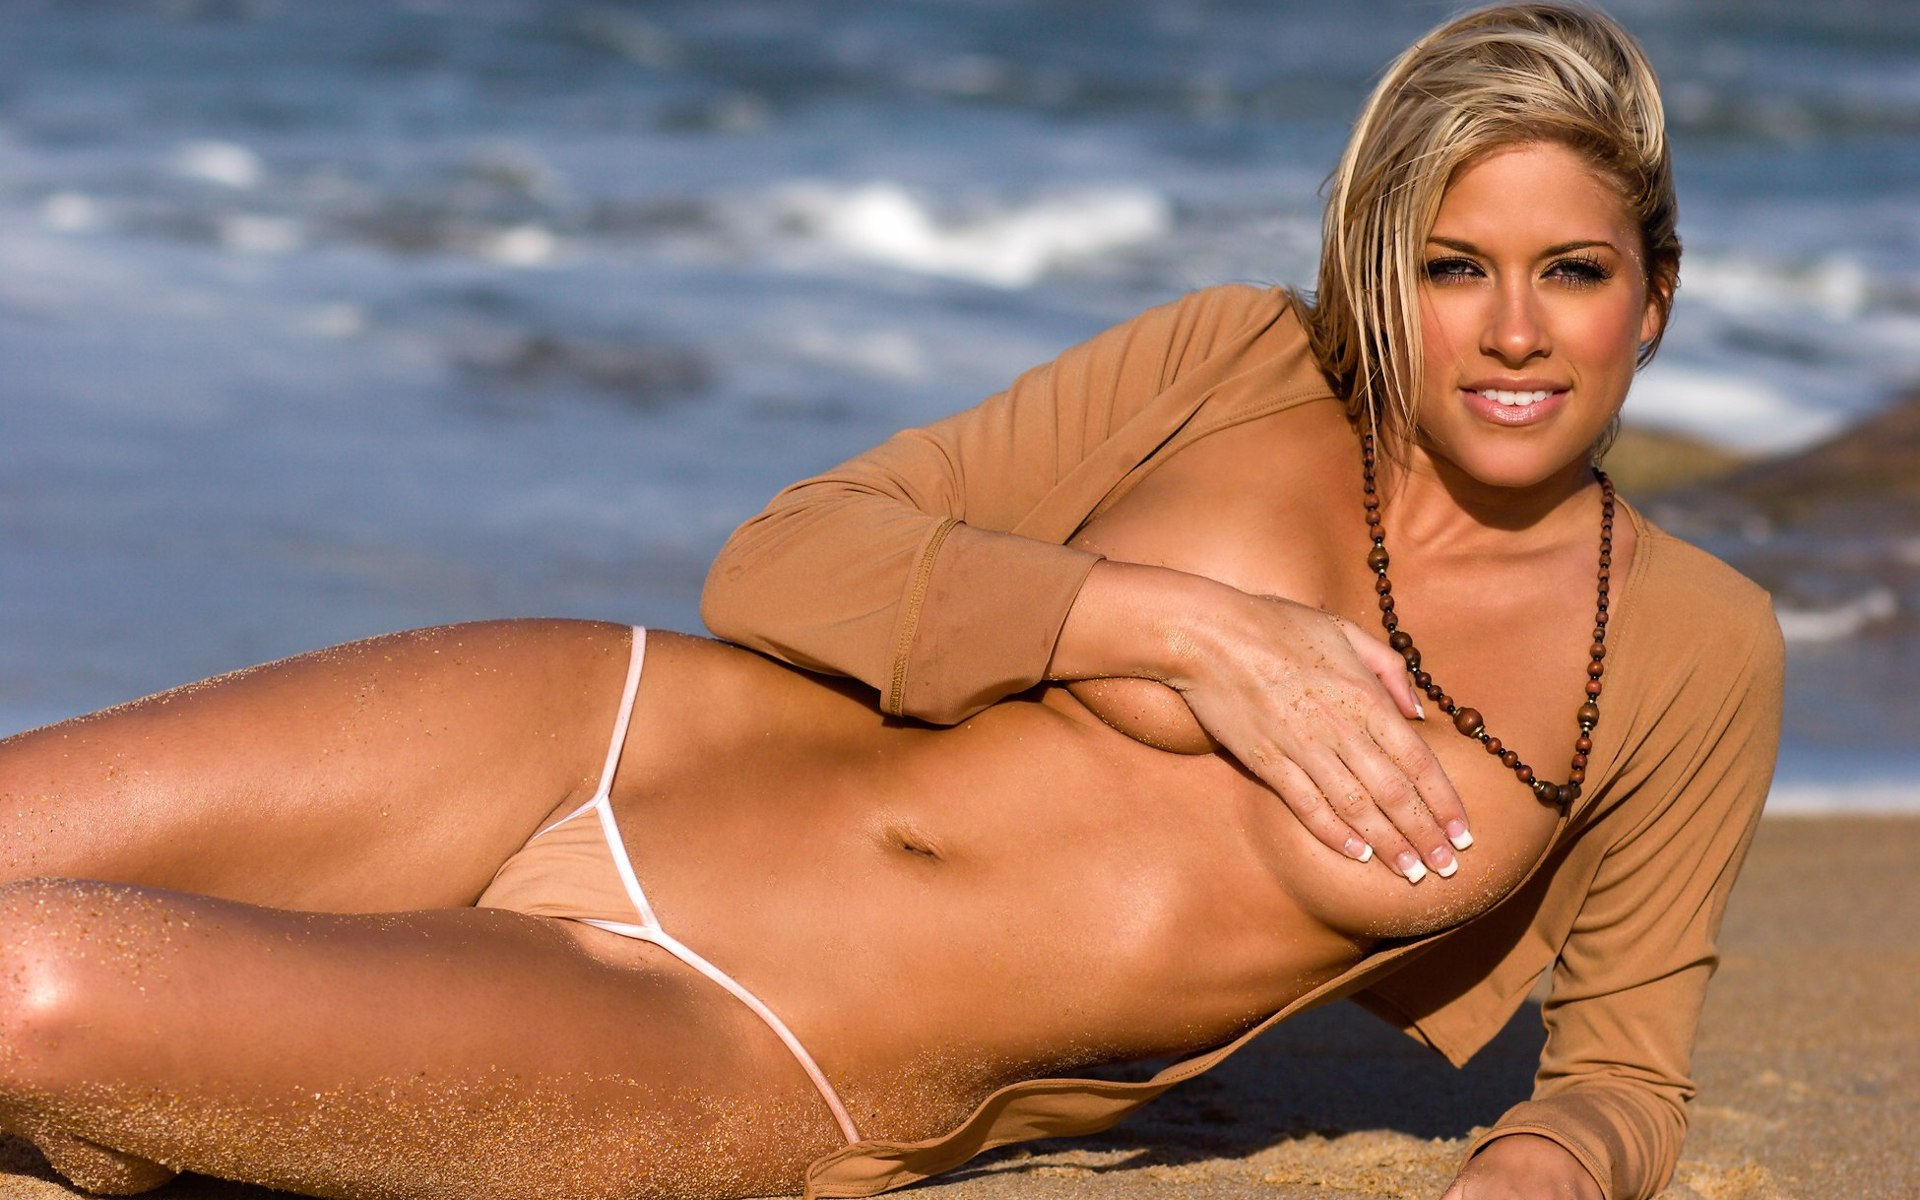 Kelly Kelly nsfw wallpaper - Kelly Kelly nsfw wallpaper